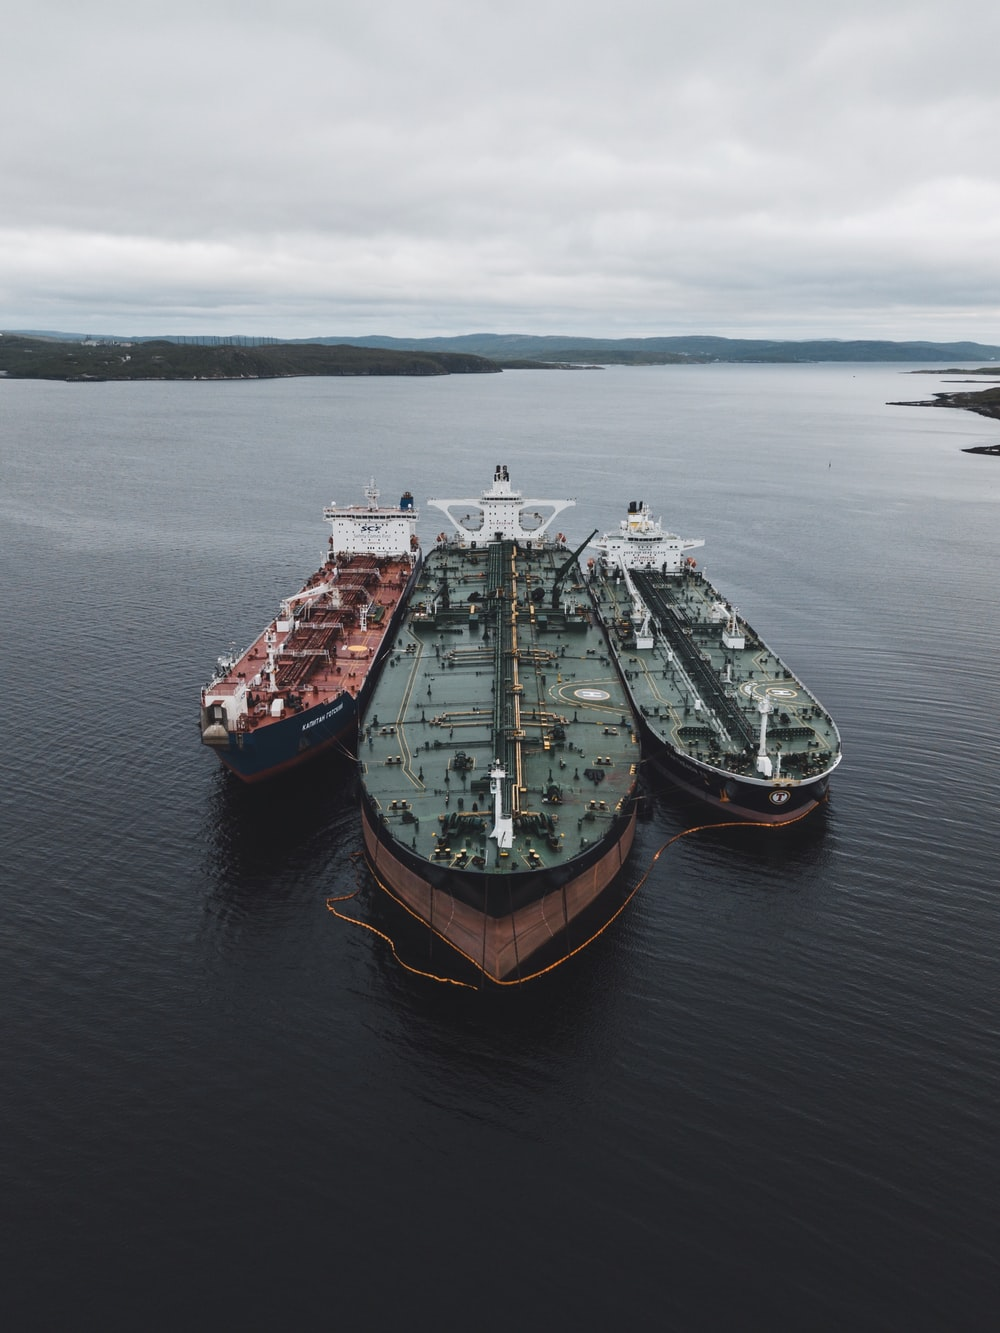 black and brown ships under cloudy sky